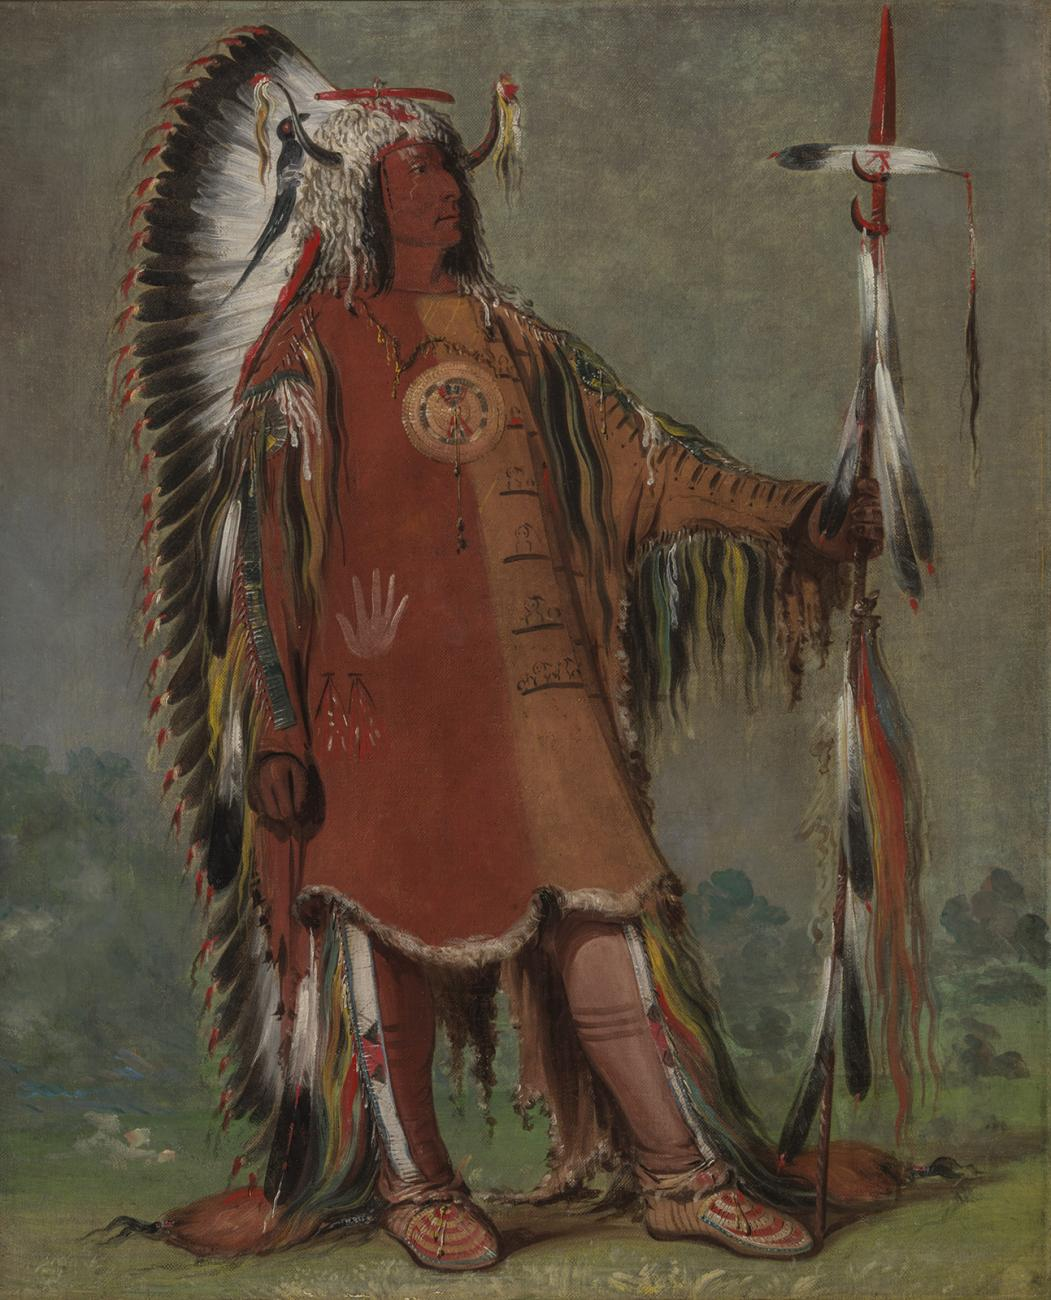 A painting of a man